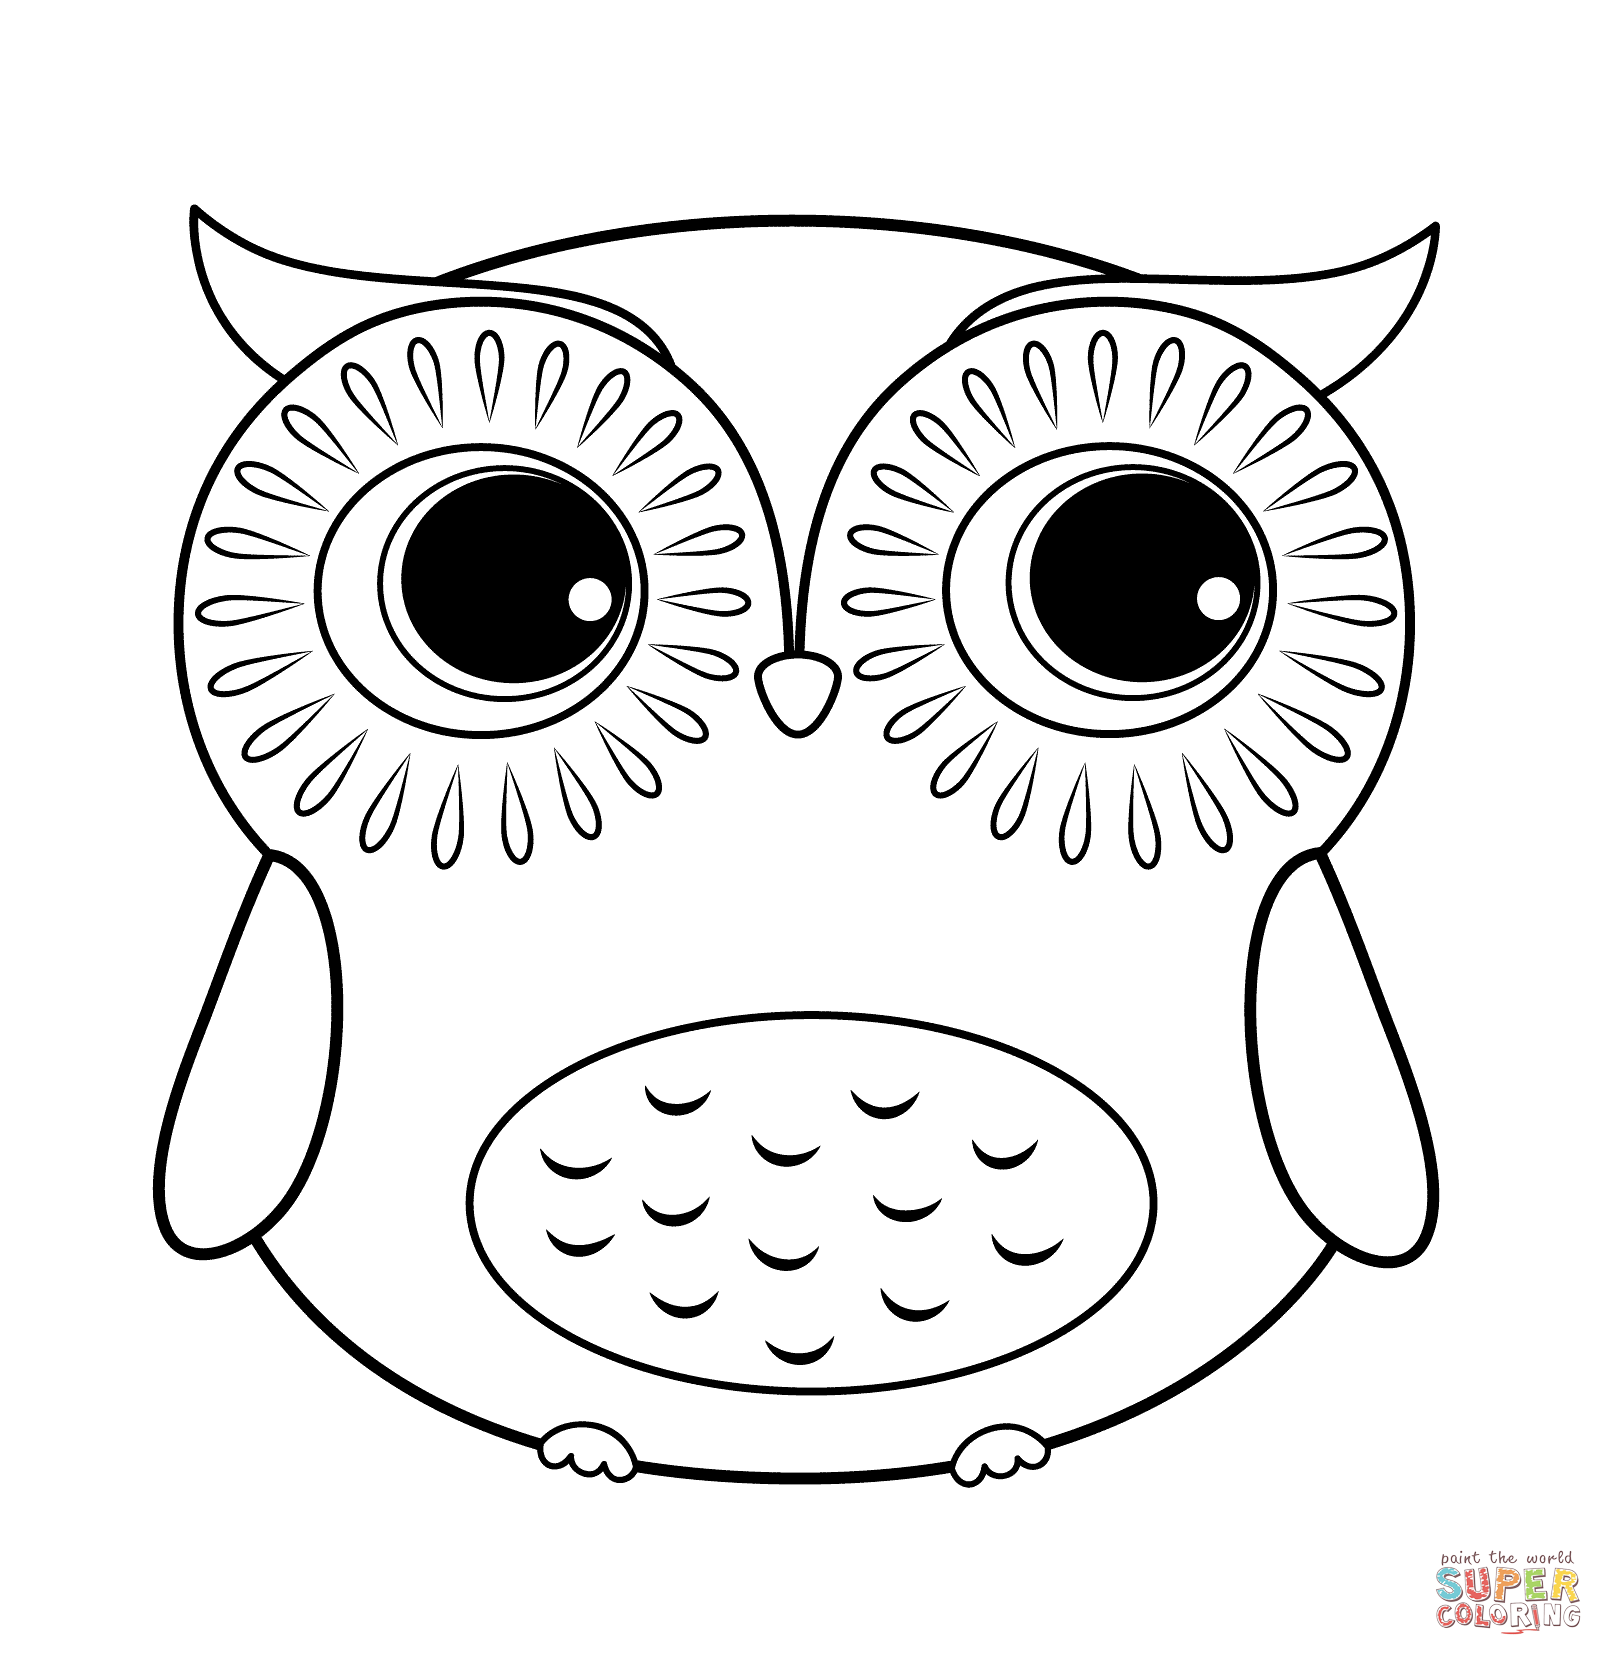 1604x1656 Owls Coloring Pages Free Coloring Pages Coloring Pages Of Owls